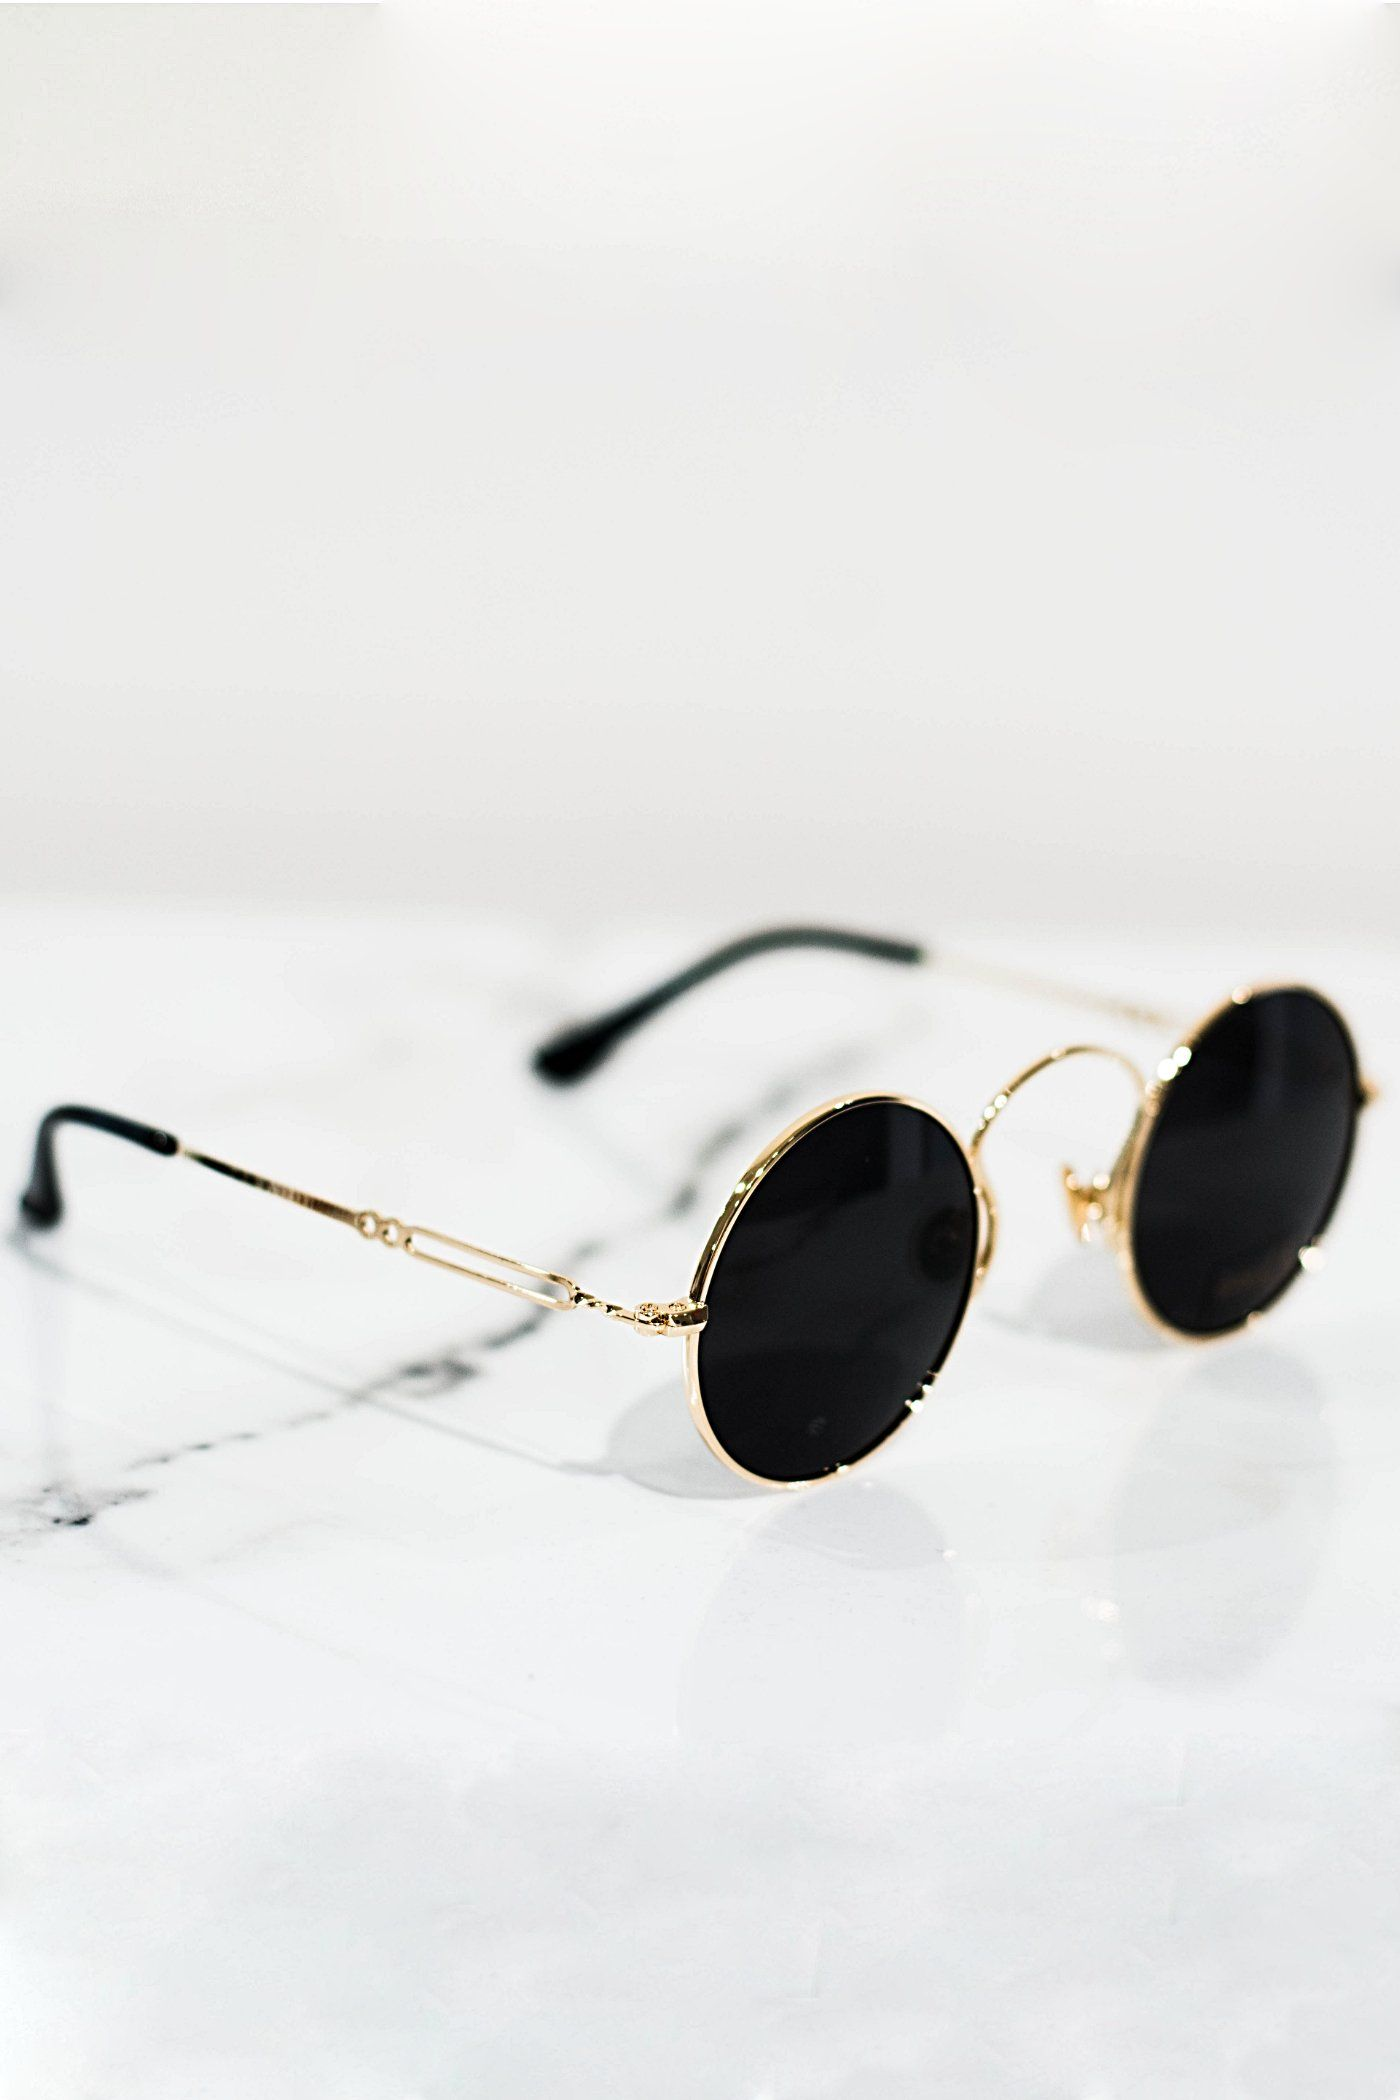 Retro sunglasses gold With Dark-tinted lens